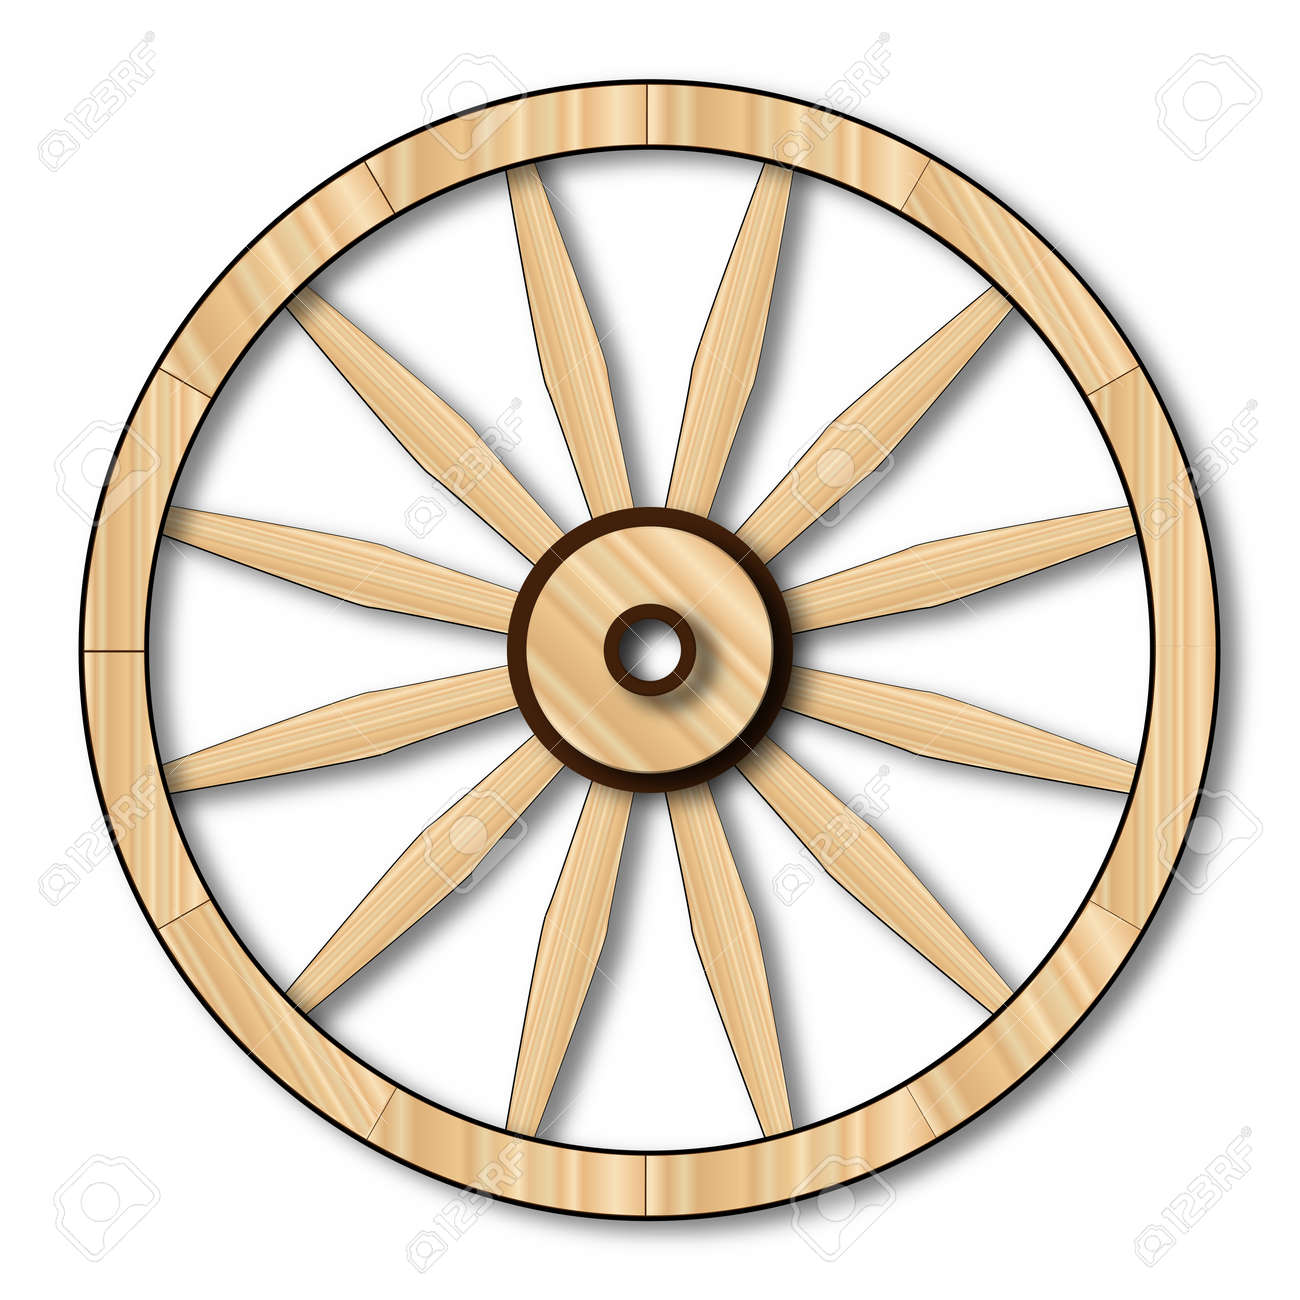 A Typical Wheel From A Western Covered Wagon Stock Photo, Picture ...